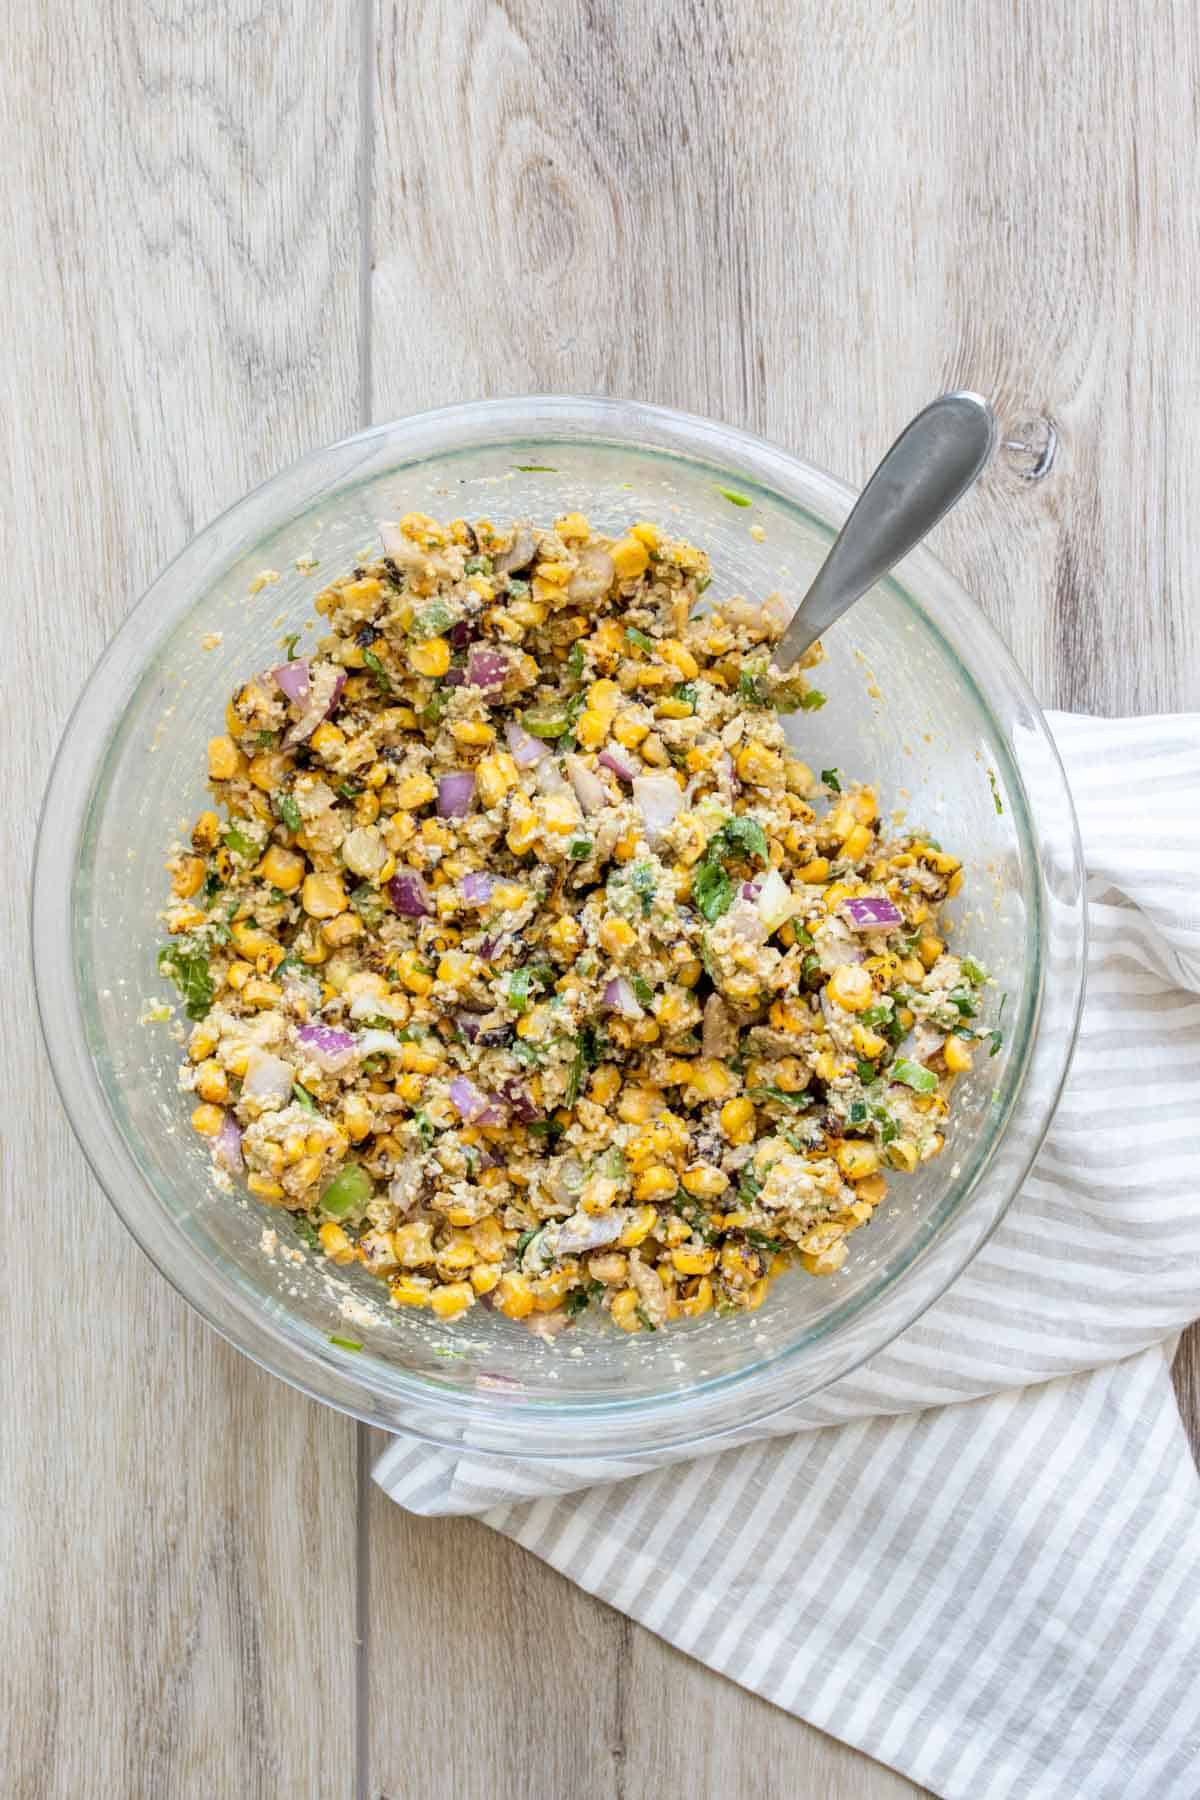 A glass bowl with mixed up corn salad inside